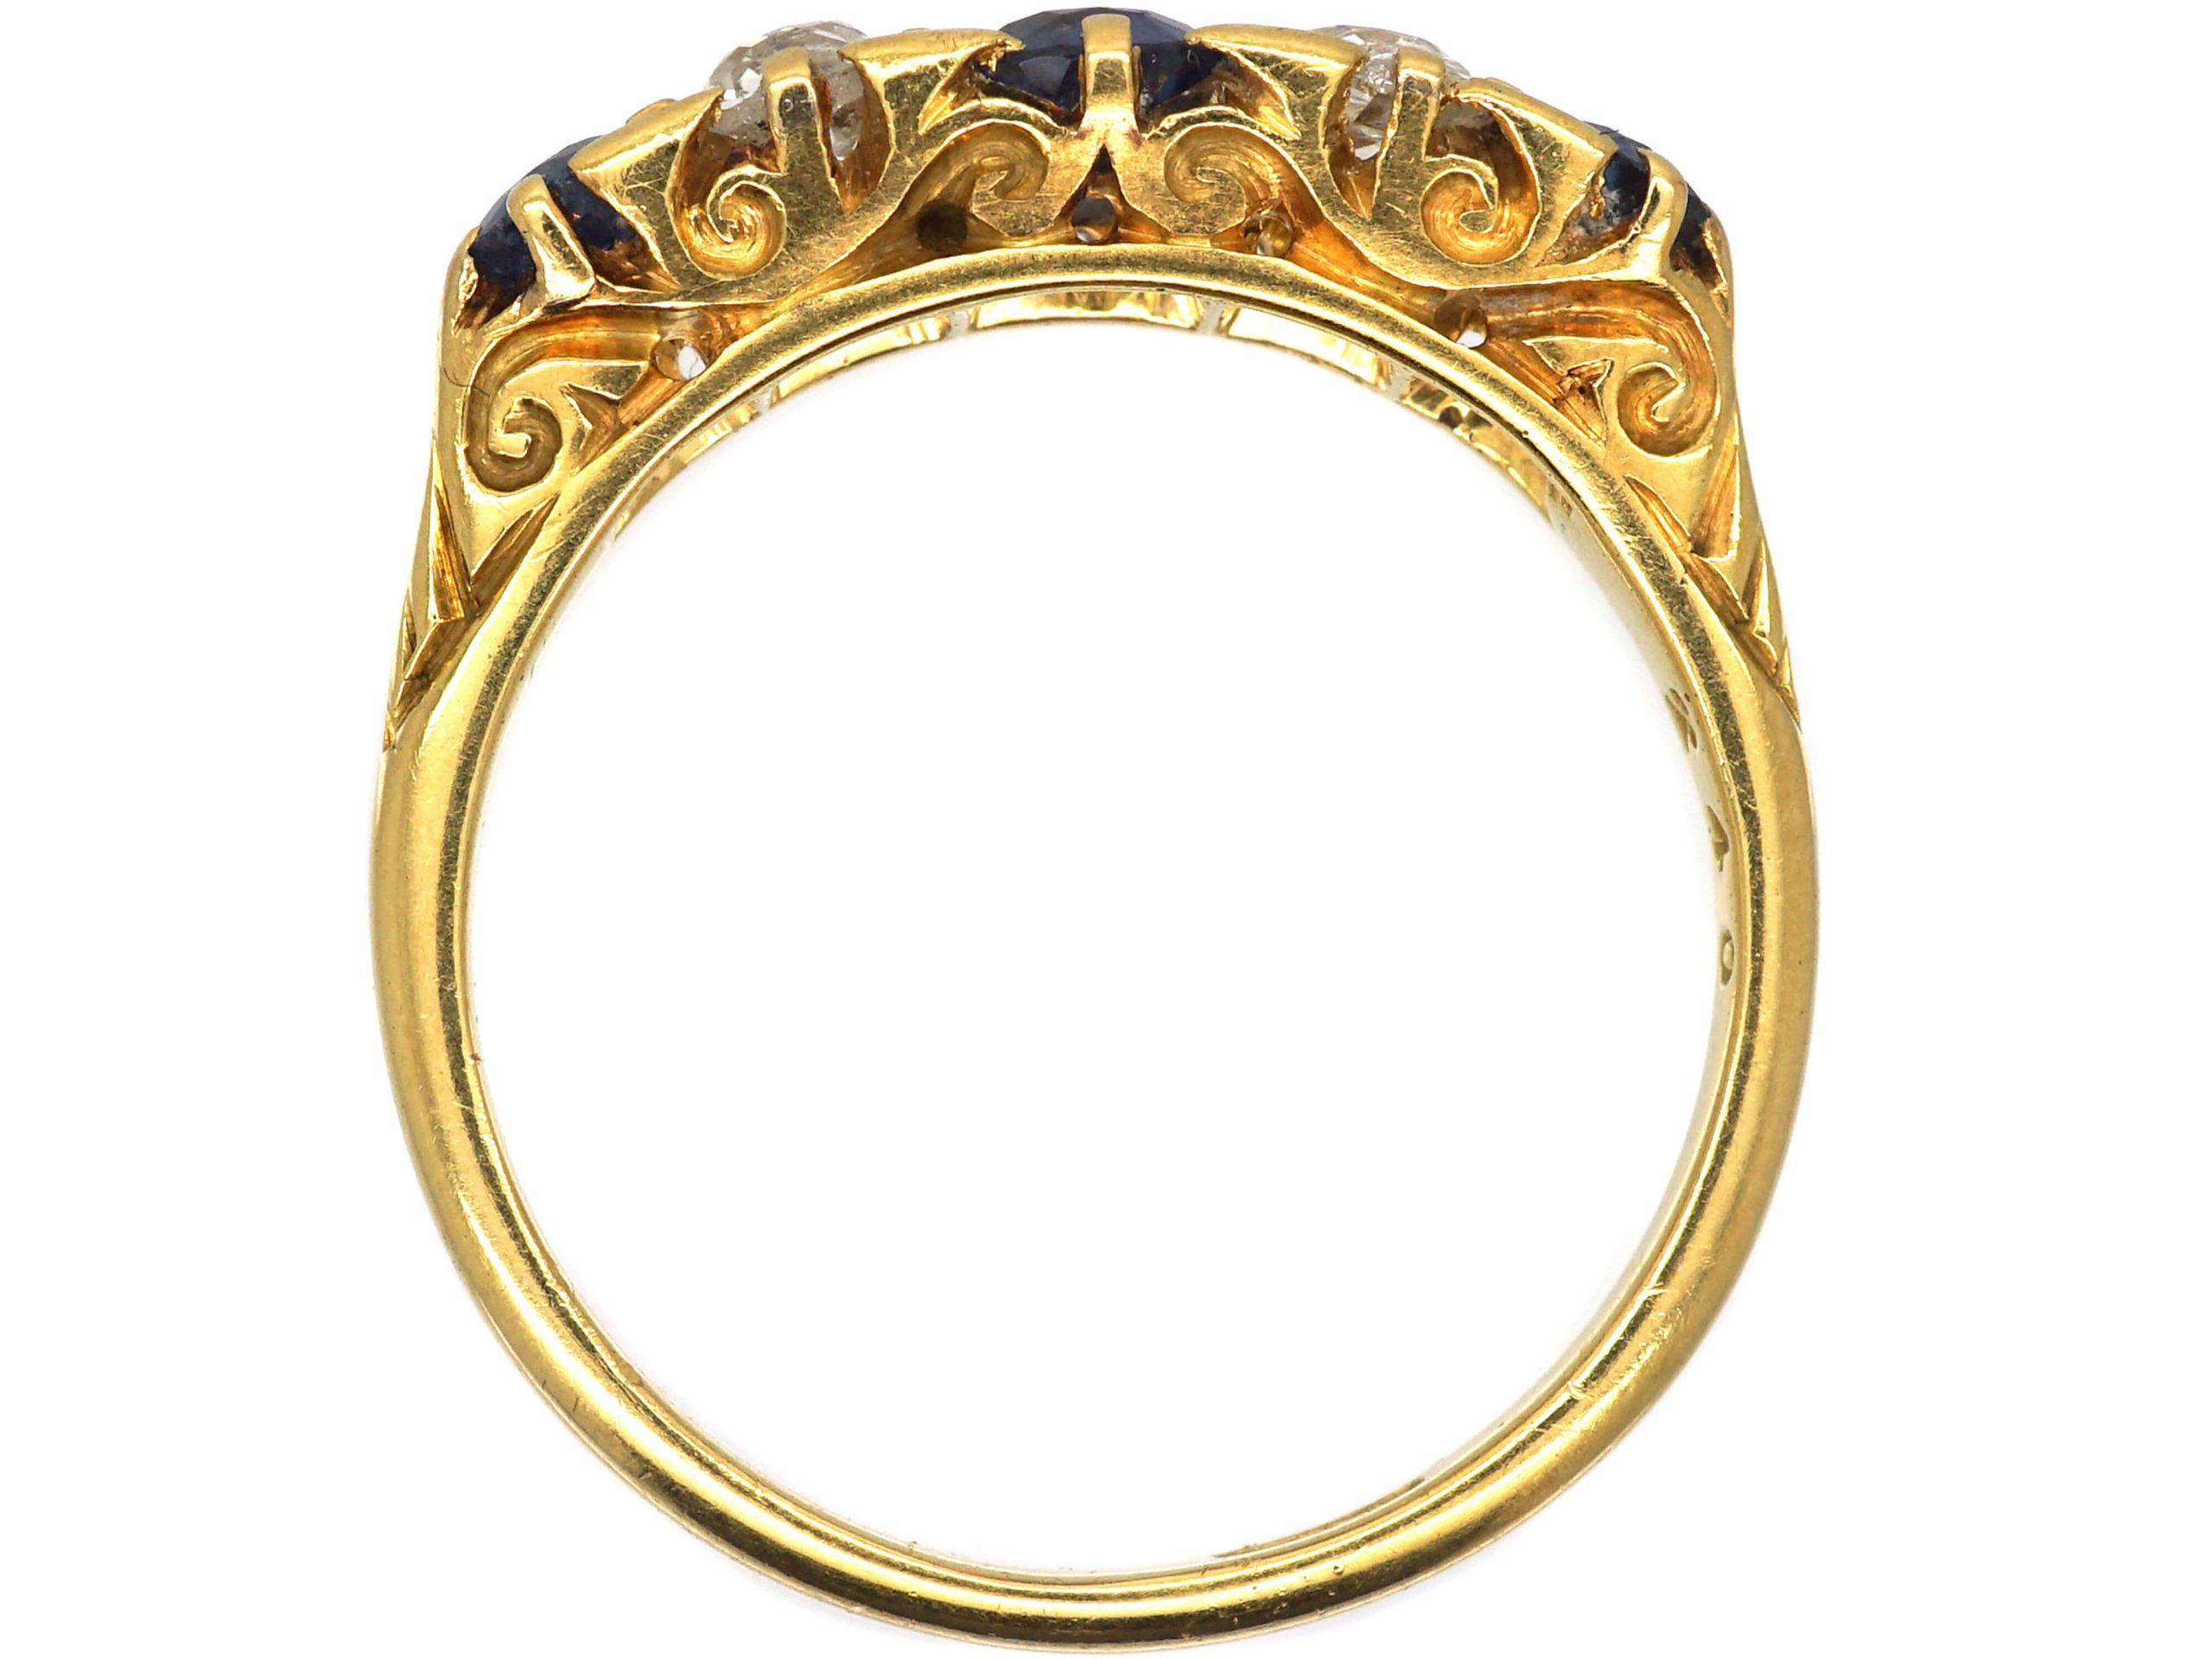 Edwardian 18ct Gold, Five Stone Sapphire & Diamond Carved Half Hoop Ring